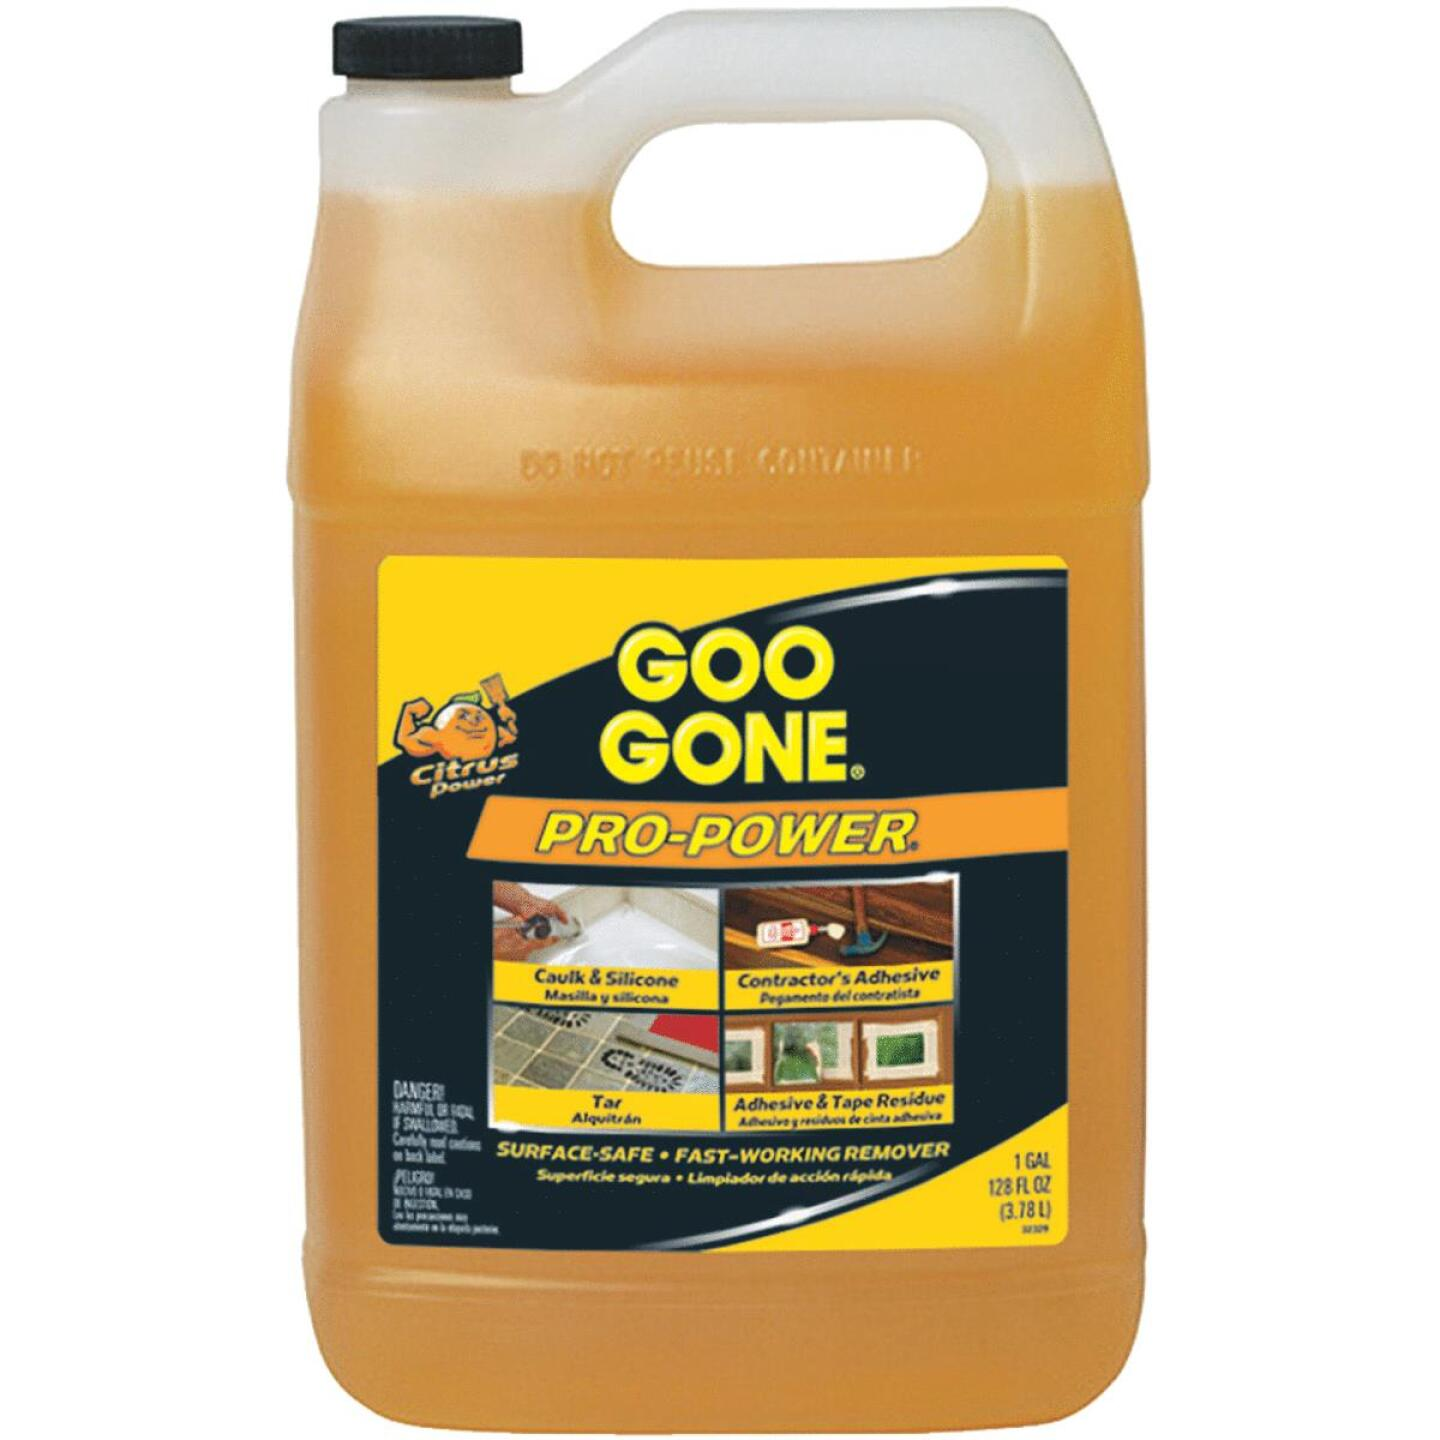 Goo Gone 1 Gal. Pro-Power Adhesive Remover Image 264